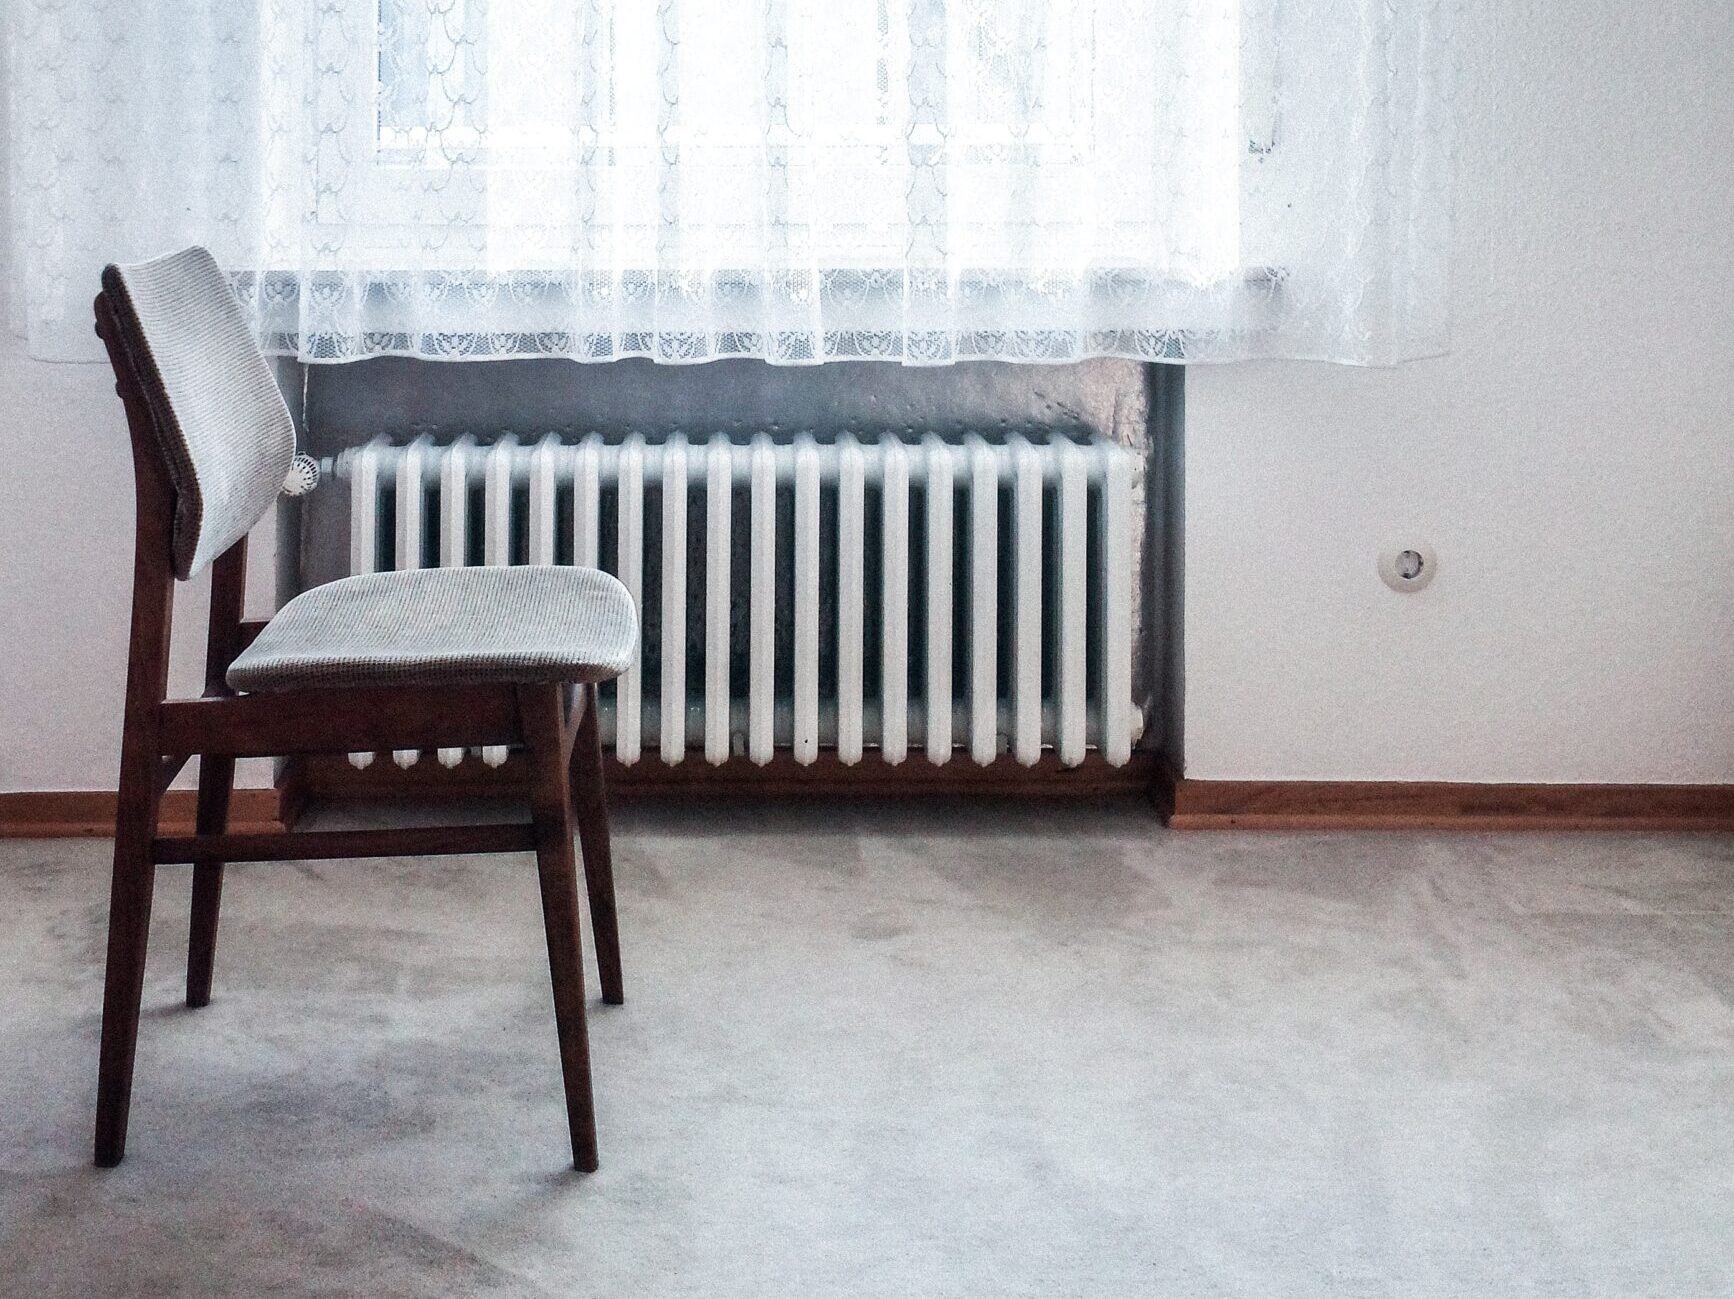 brown chair beside white radiator heater